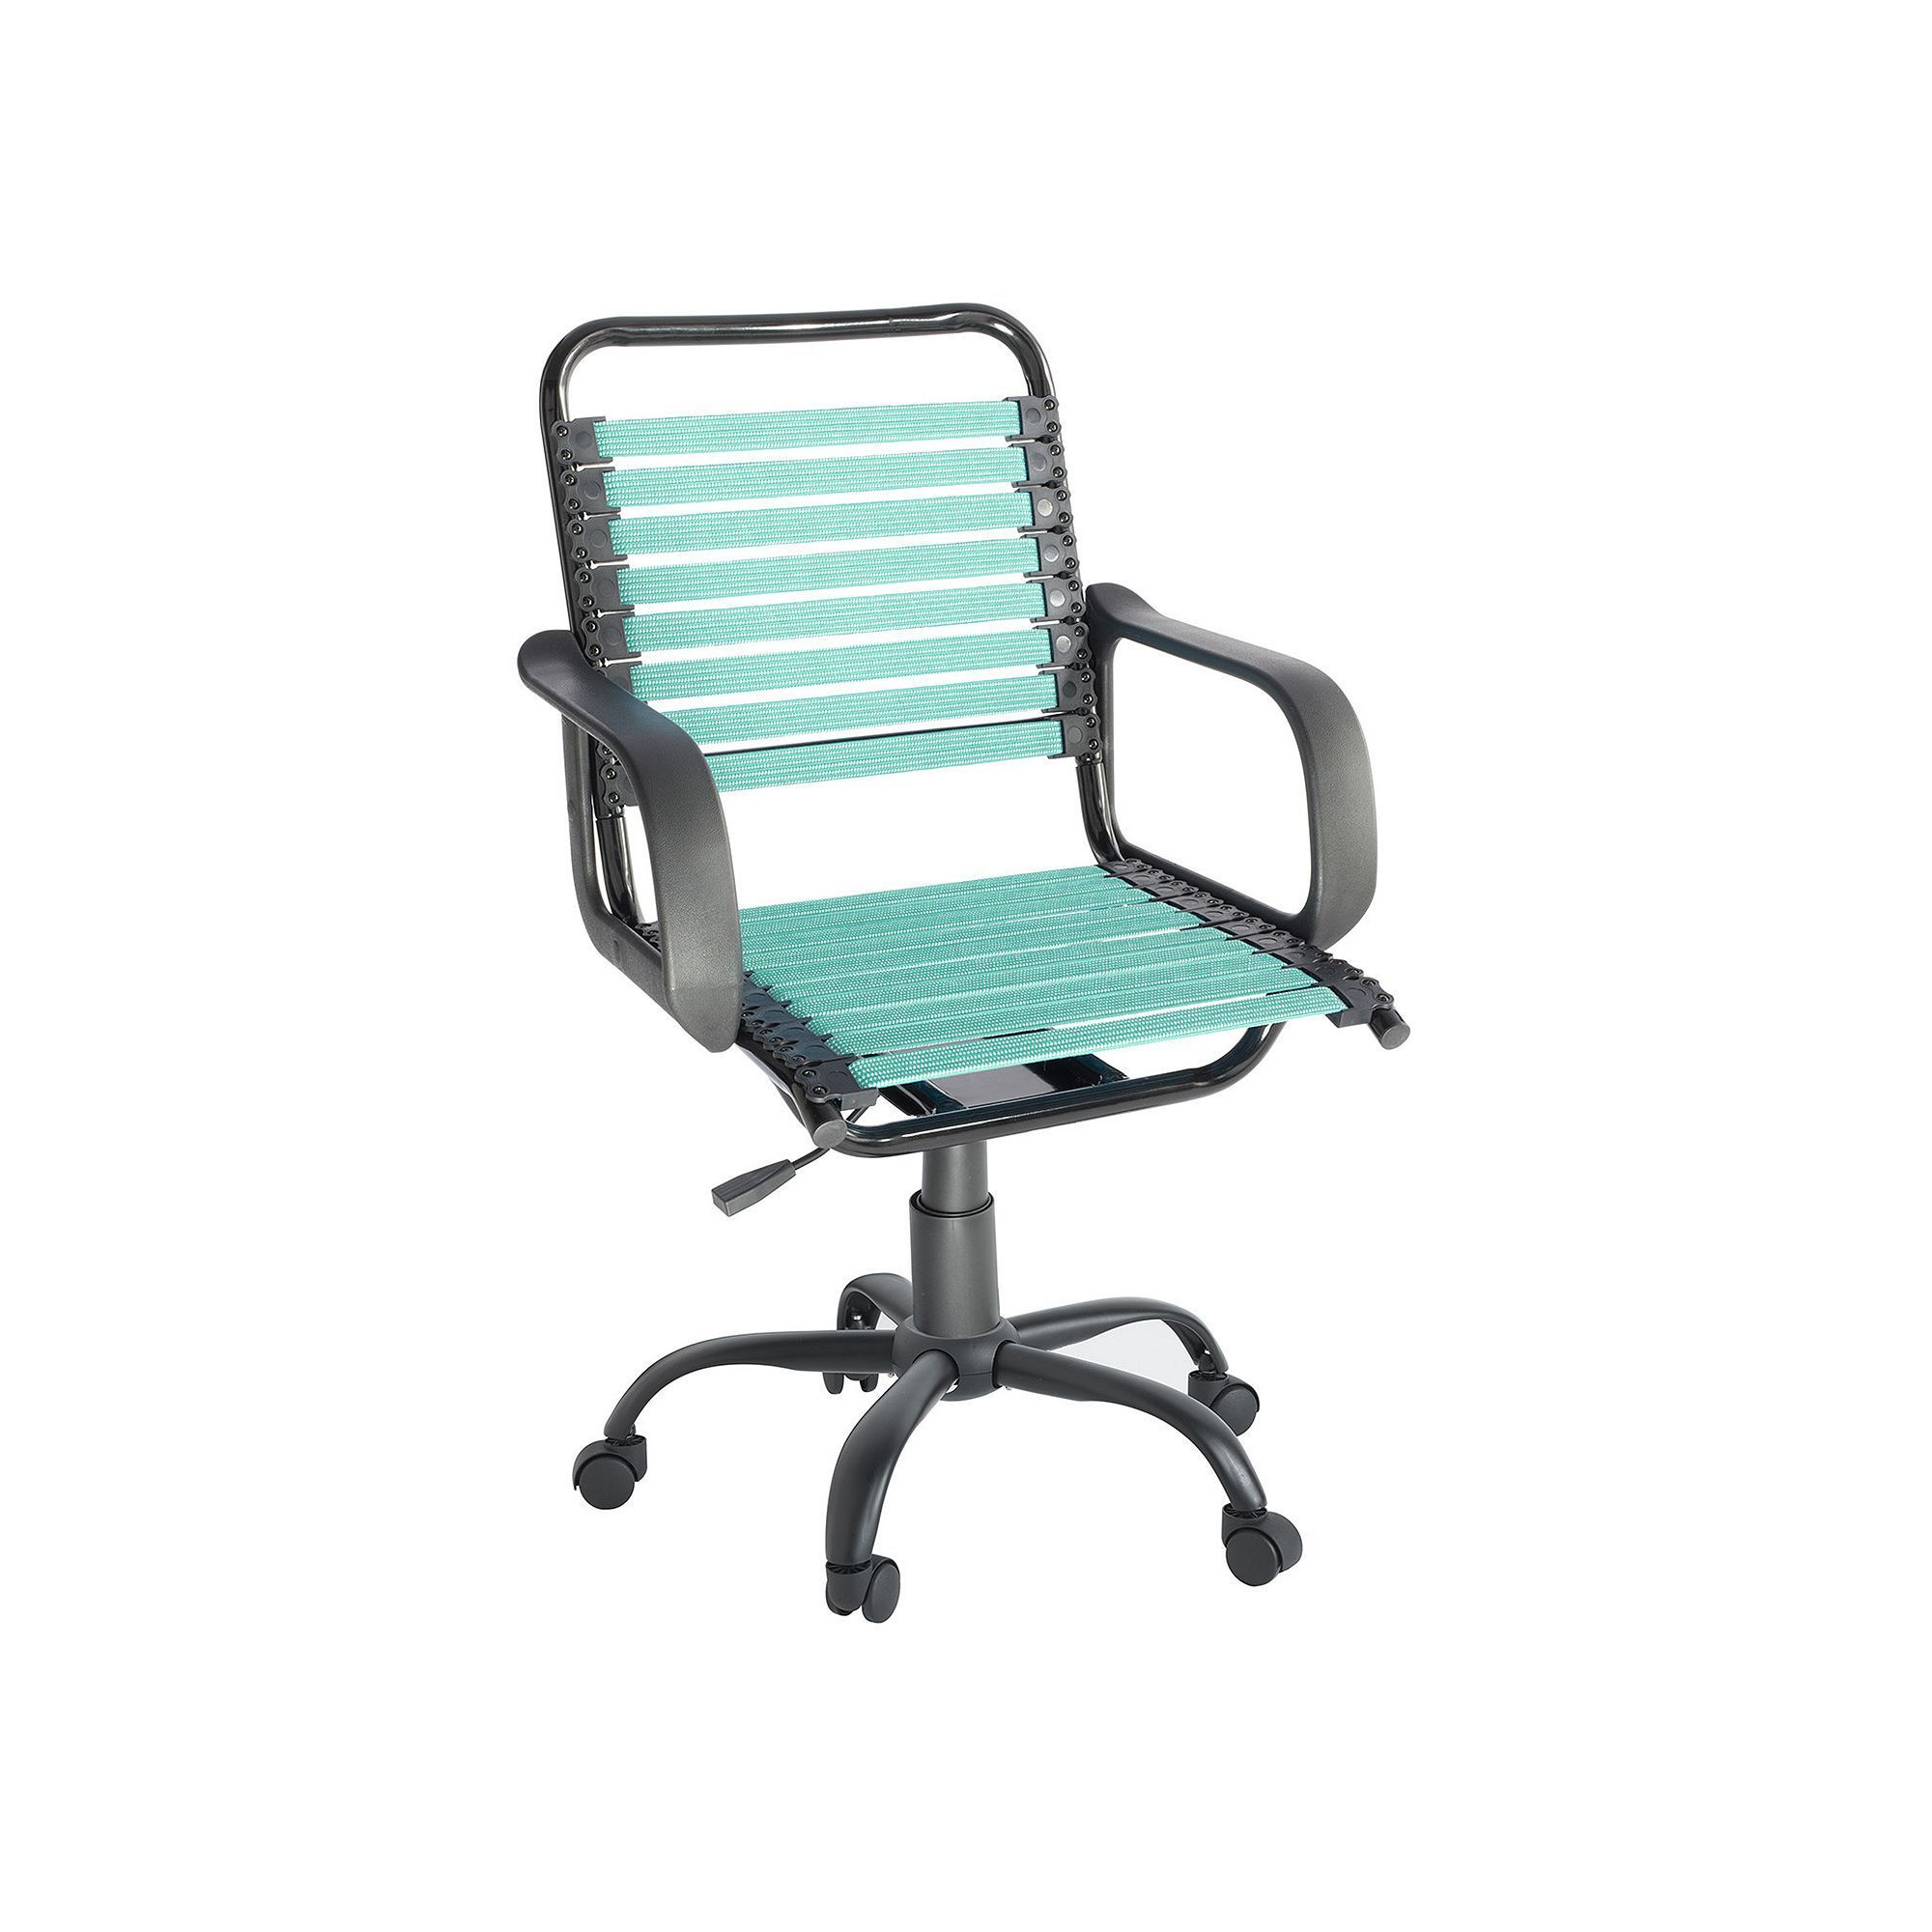 Desk Chair Turquoise Heywood Wakefield Simple By Design Bungee Blue Turq Aqua